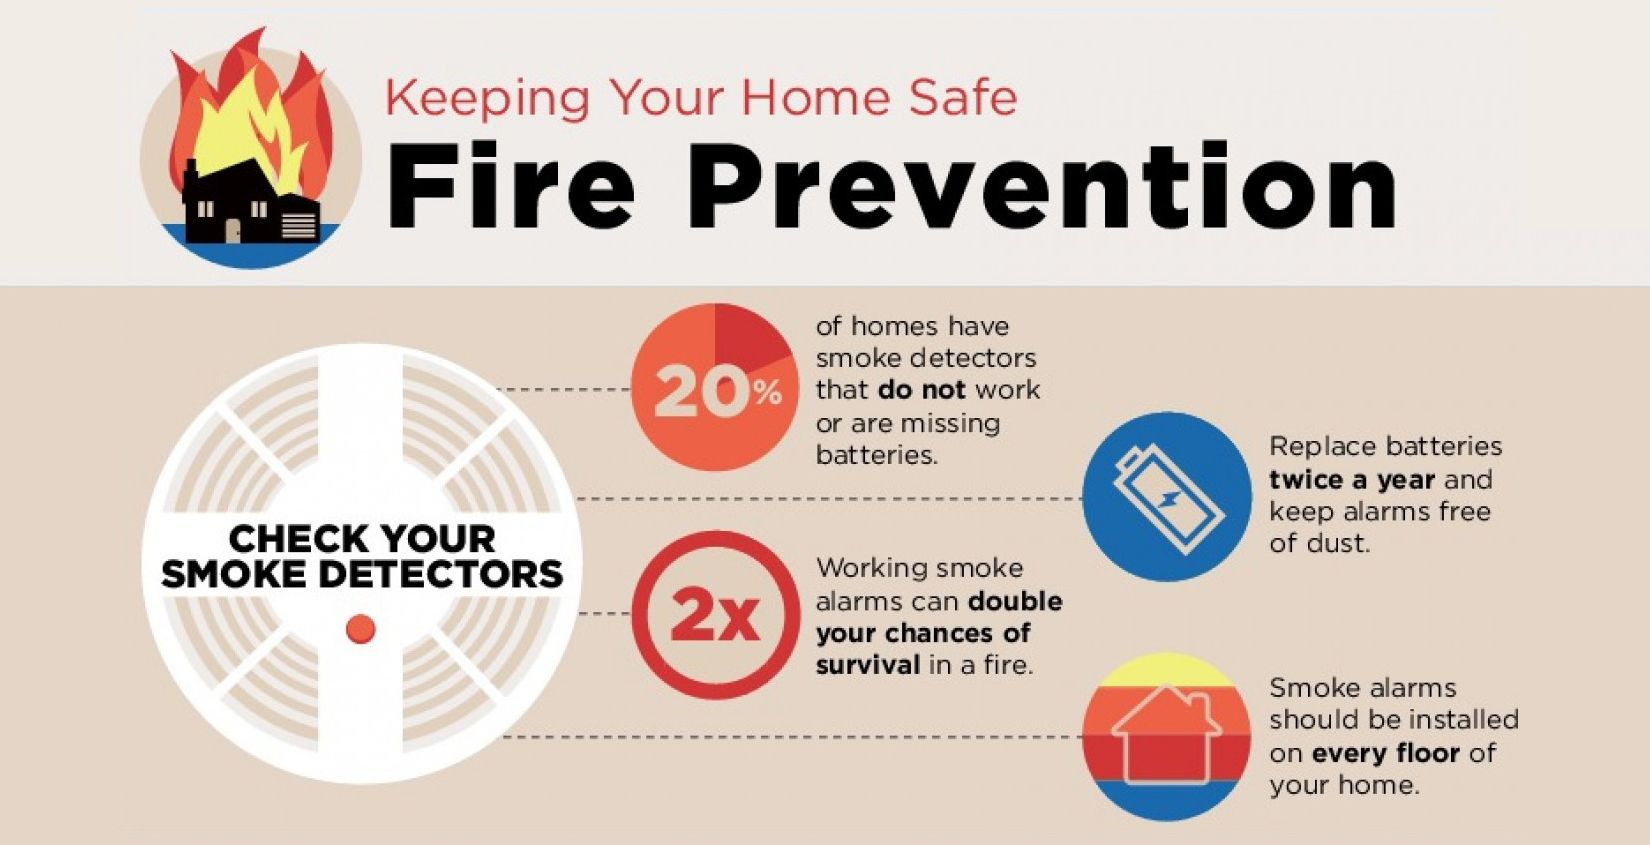 FireSafetyTips Qutak Fire prevention, Fire safety